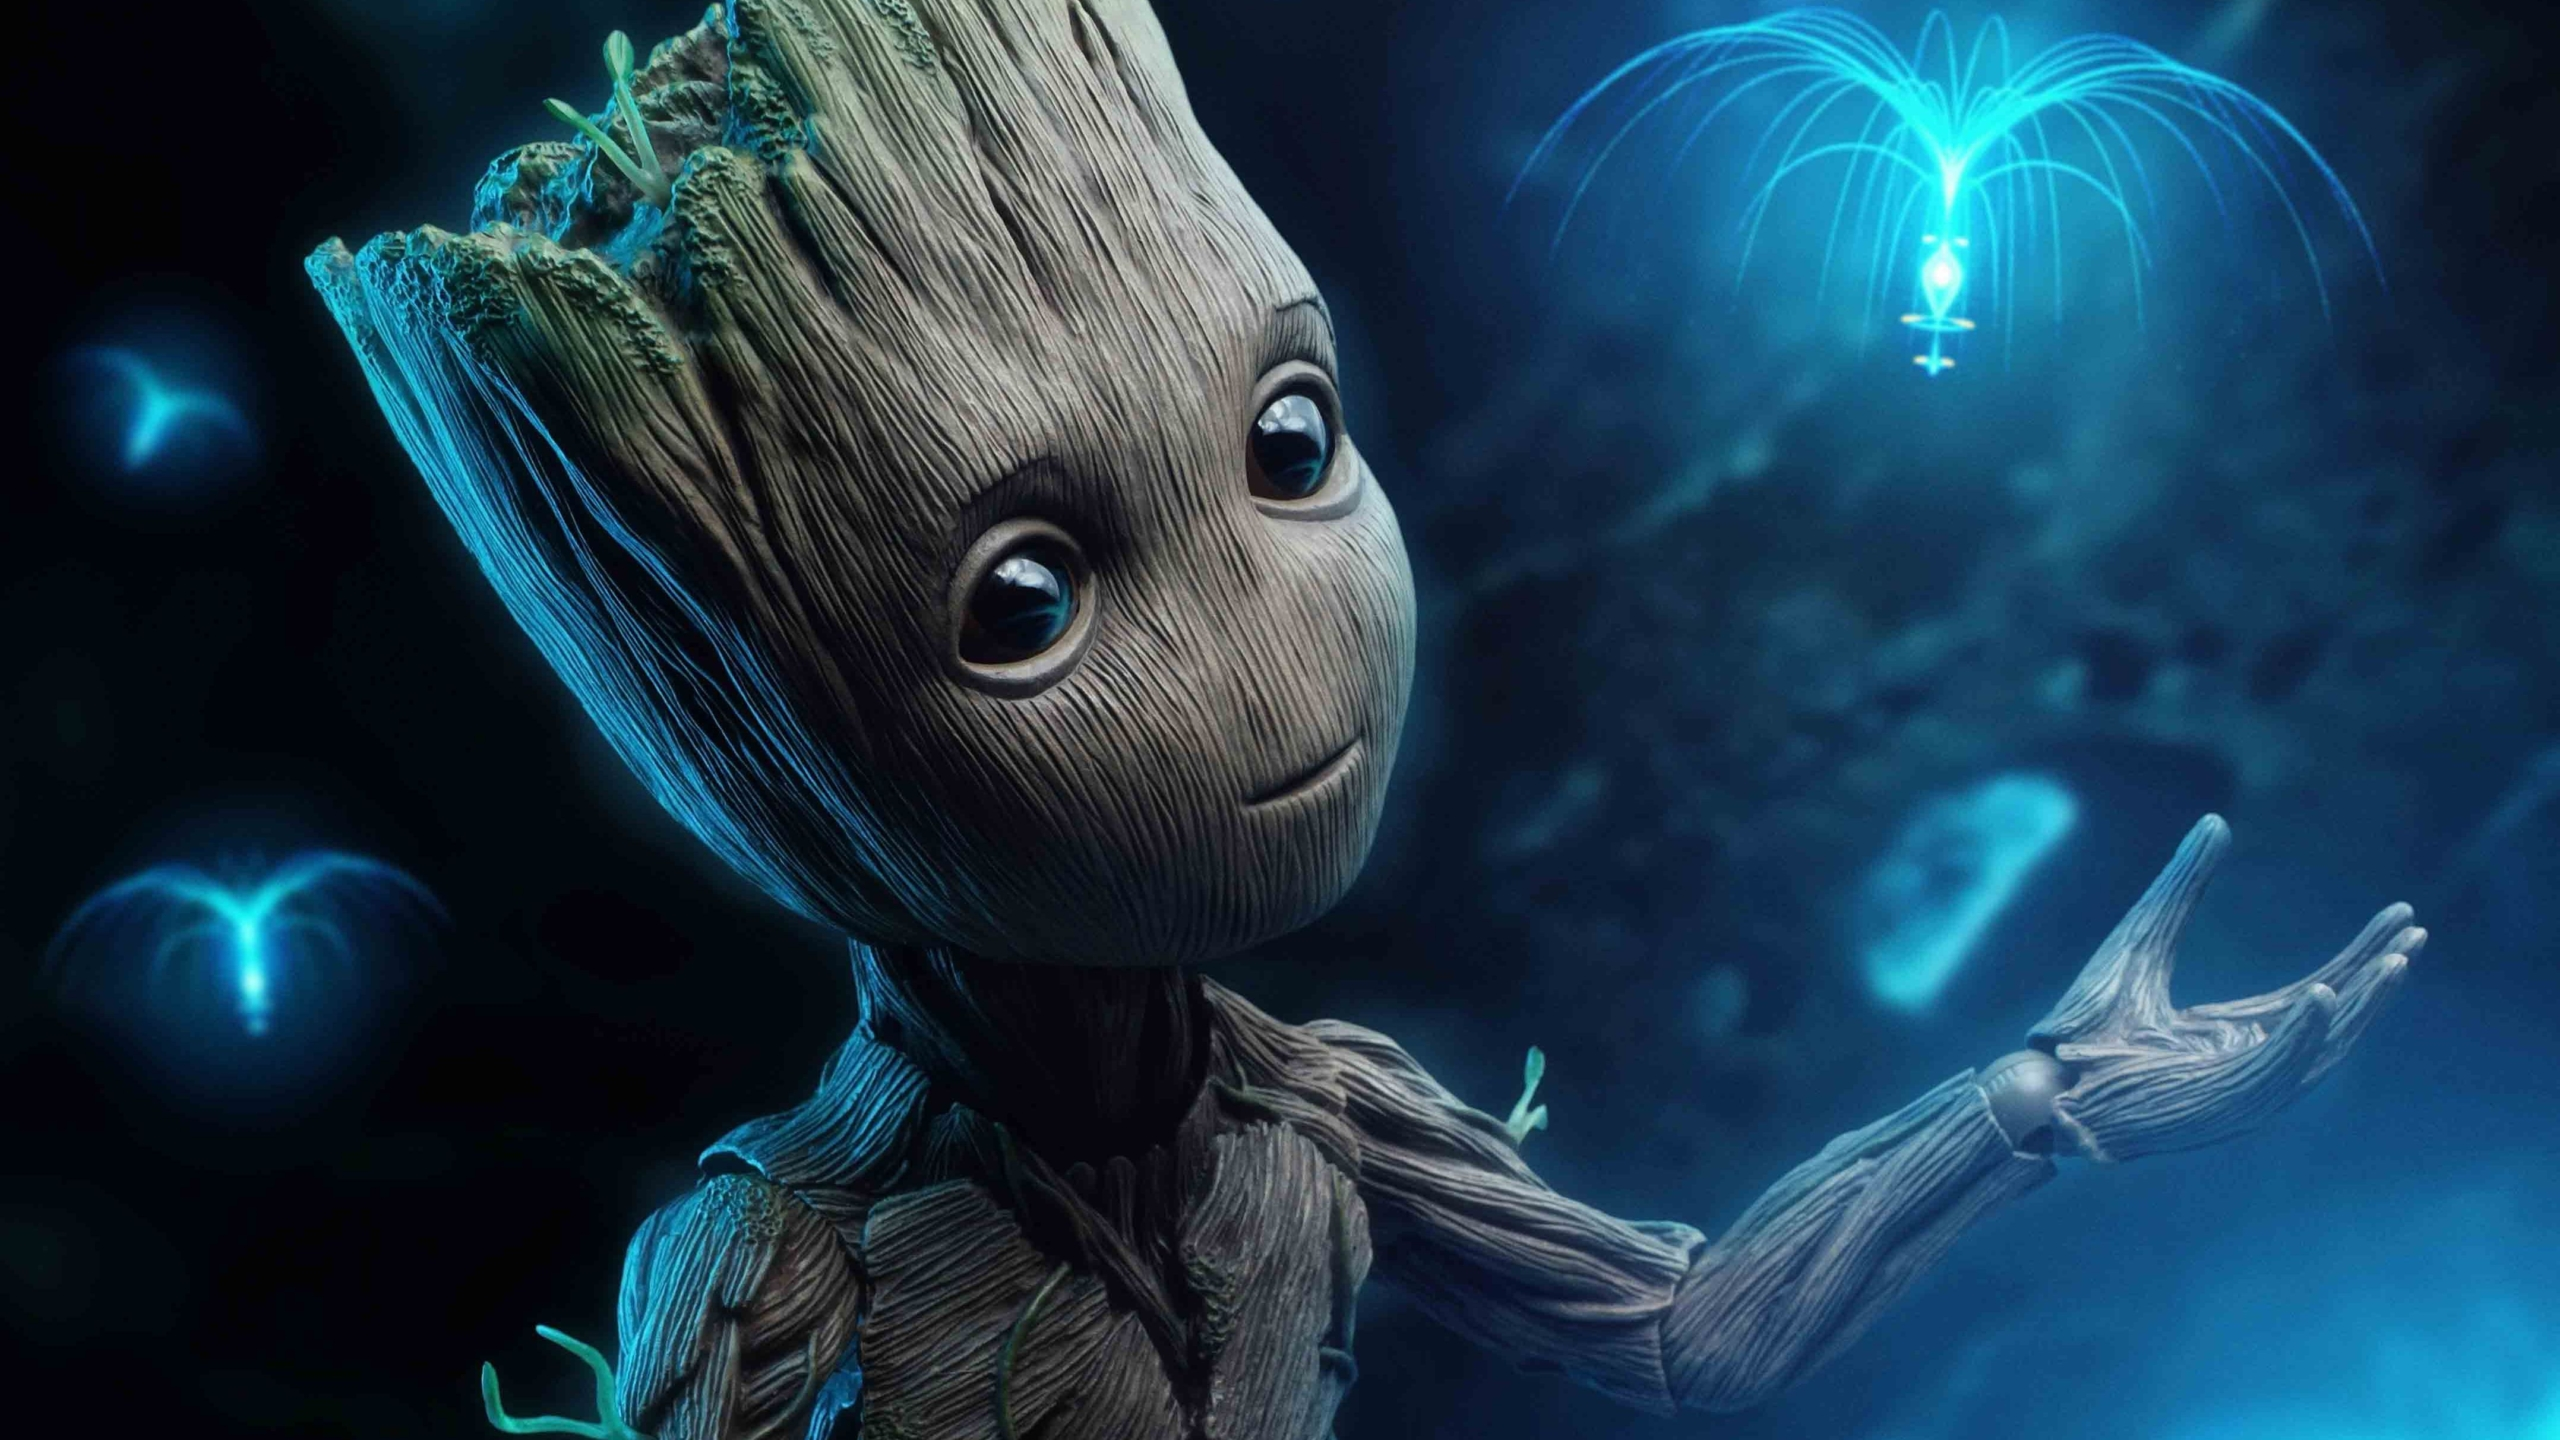 Groot Wallpaper Patterns – Learn How to Select the Best Picture design For You